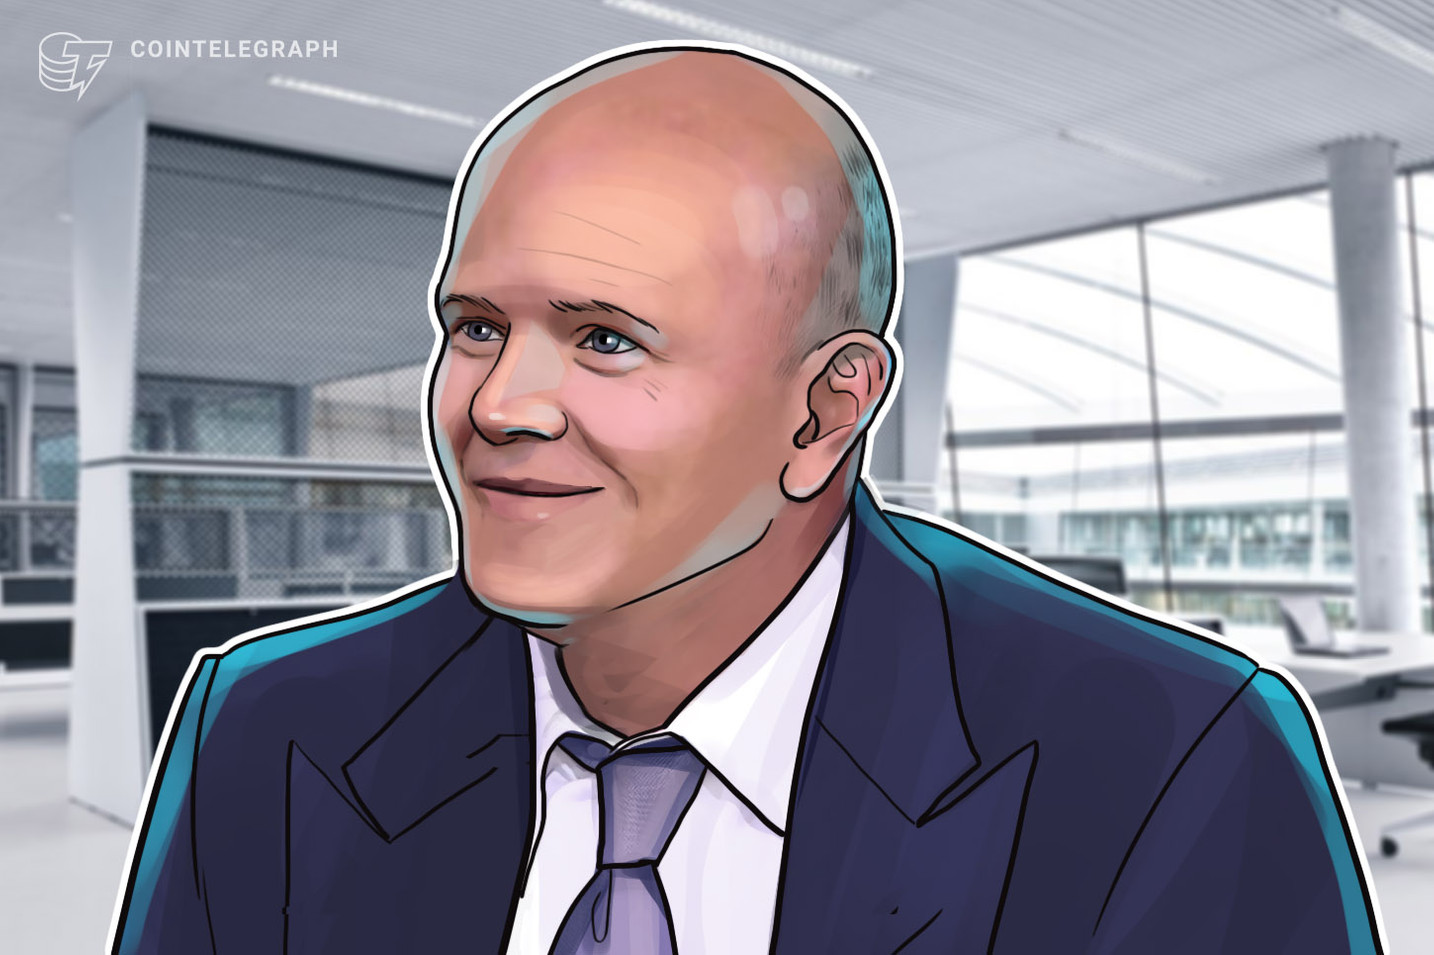 'The Drug Is Gone': Mike Novogratz Compares Current Bitcoin Markets to 'Methadone Clinic'